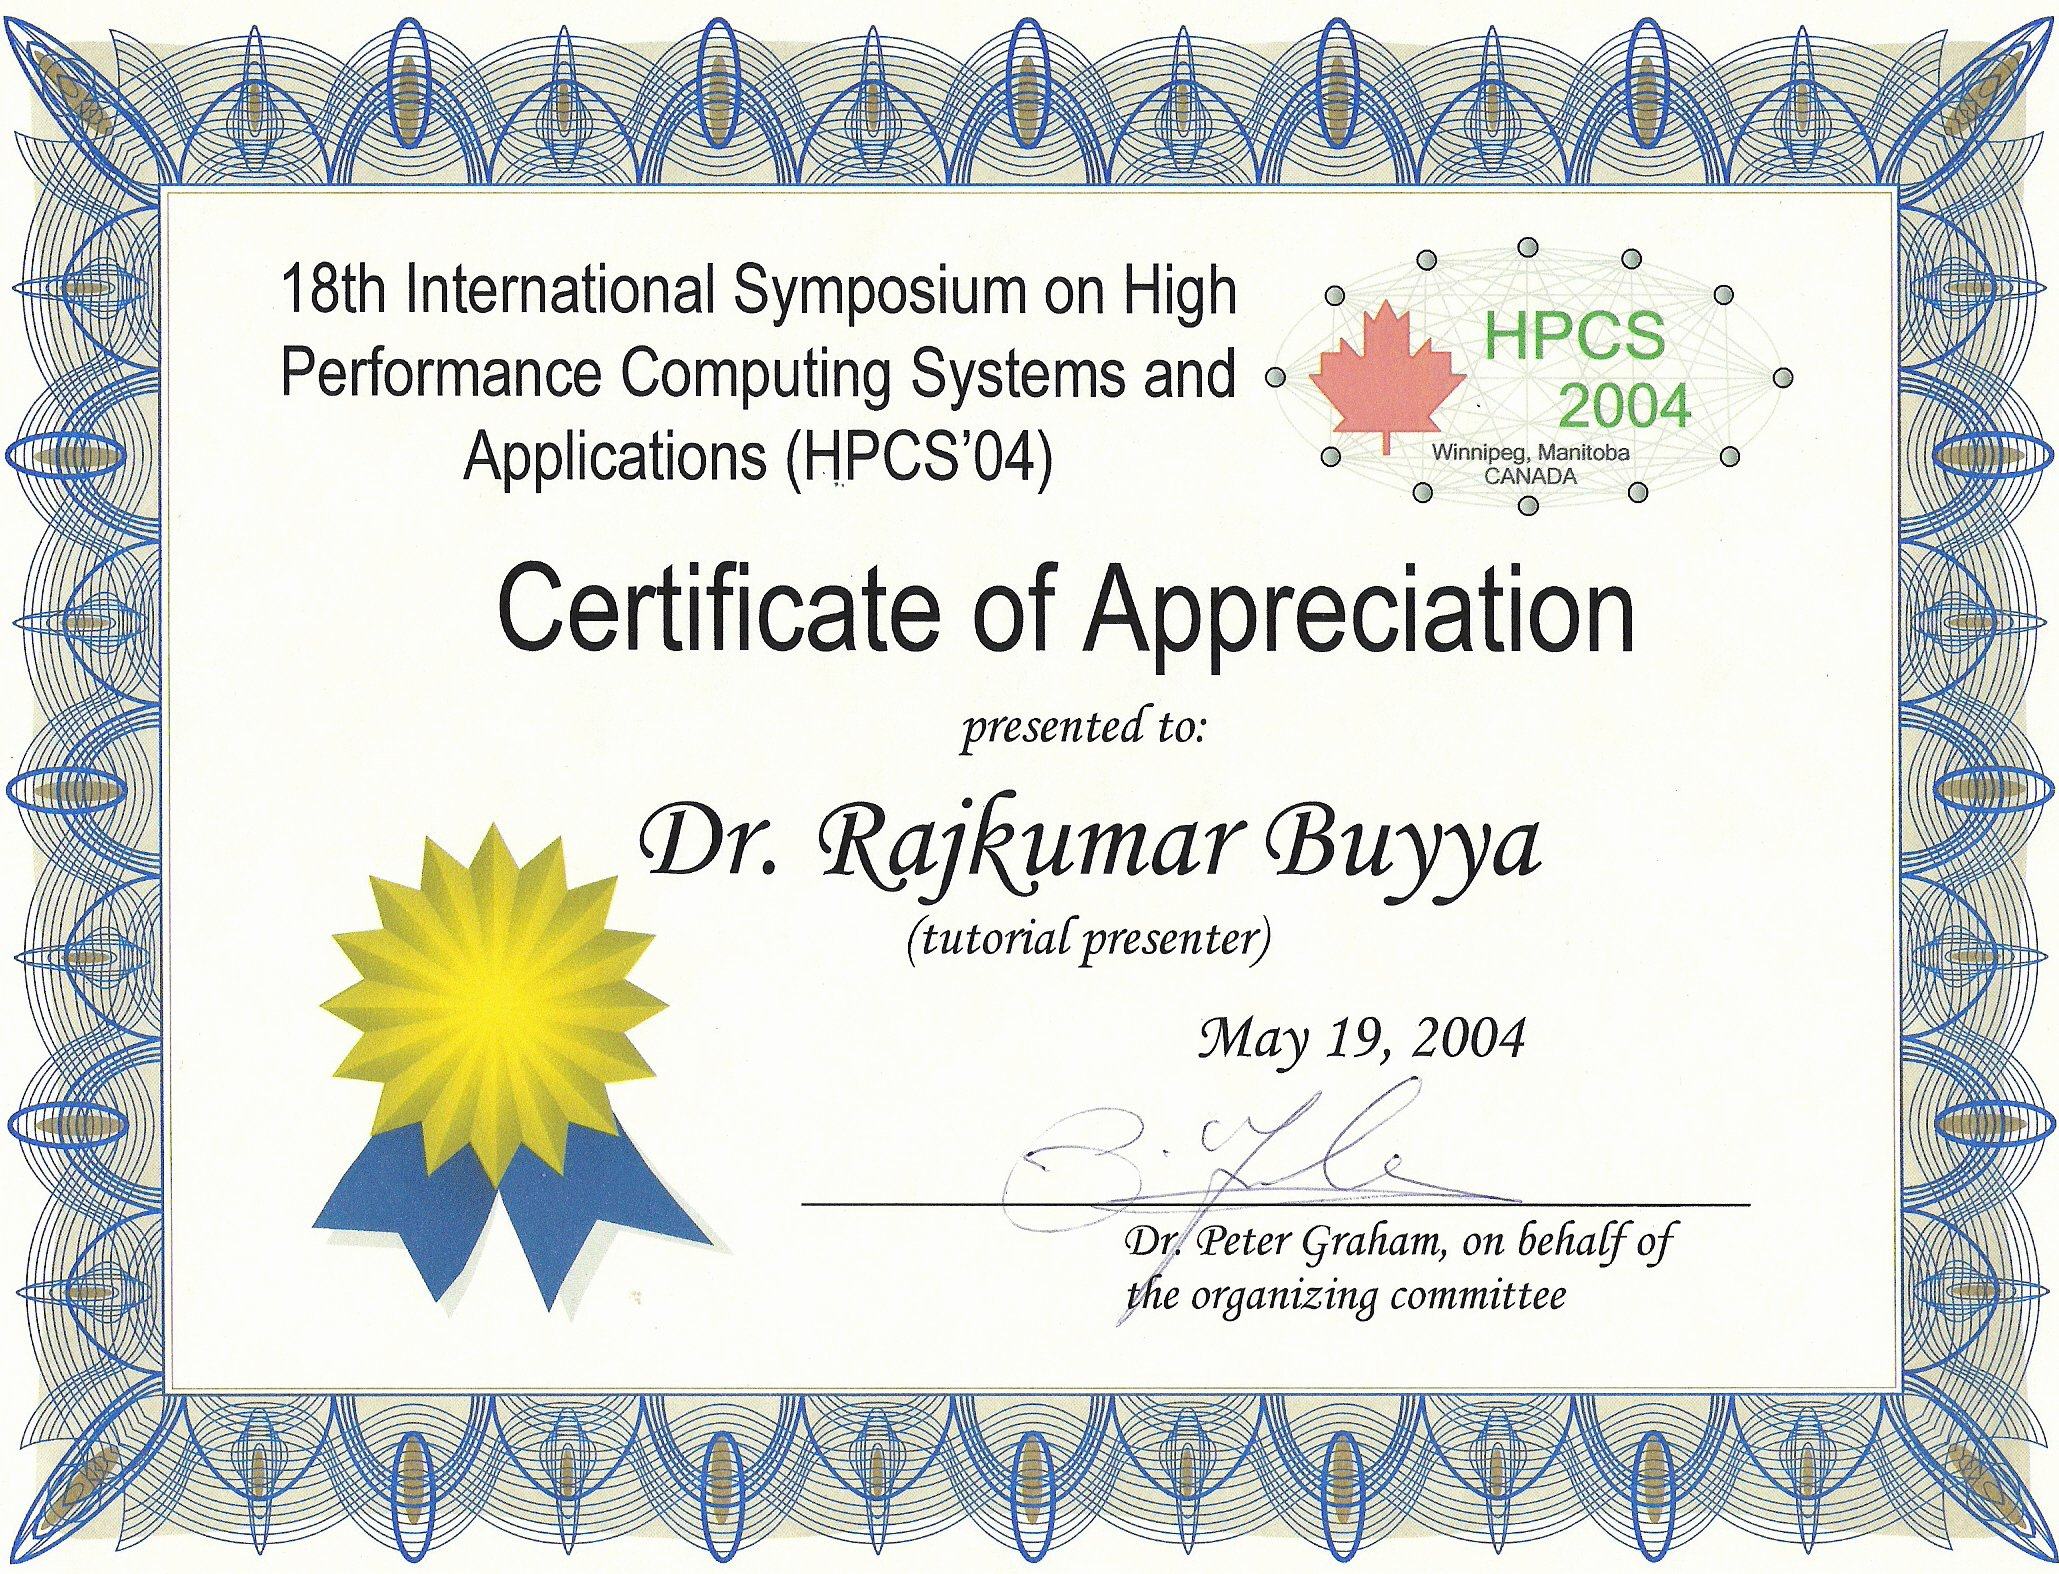 Image Of Certificate Of Appreciation New Example Certificate Appreciation for Guest Speaker